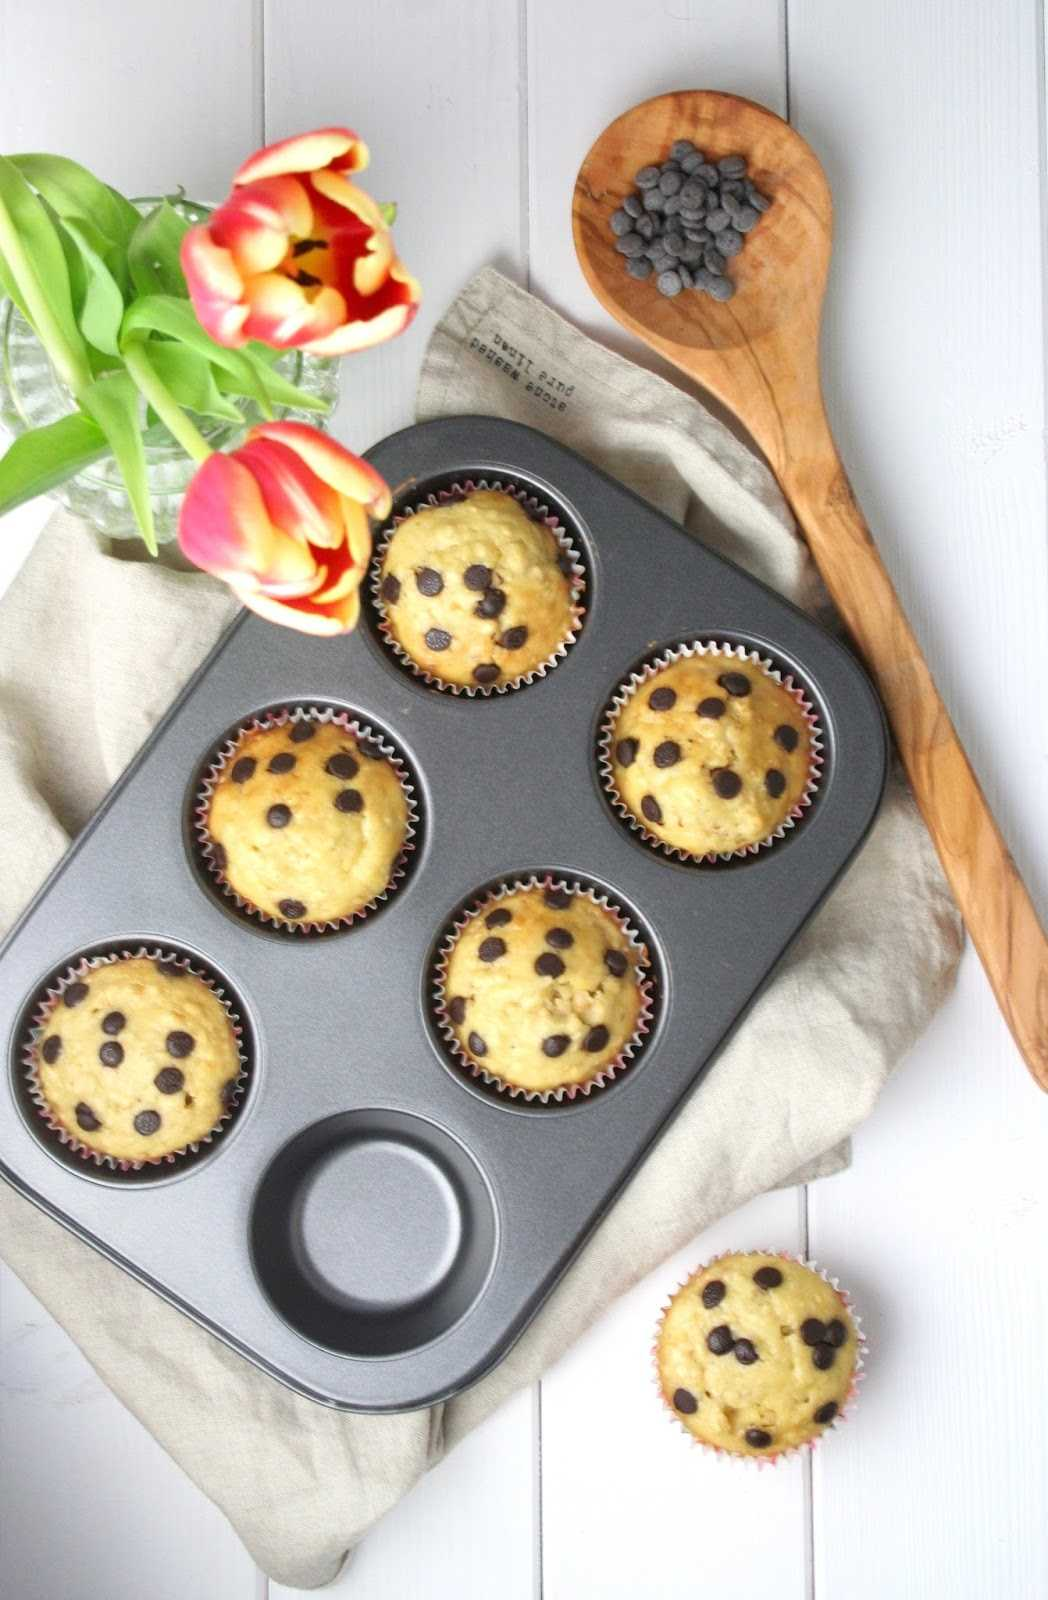 rezept dinkel muffins ohne zucker princessparanoia fitness food lifestyle aus wien. Black Bedroom Furniture Sets. Home Design Ideas